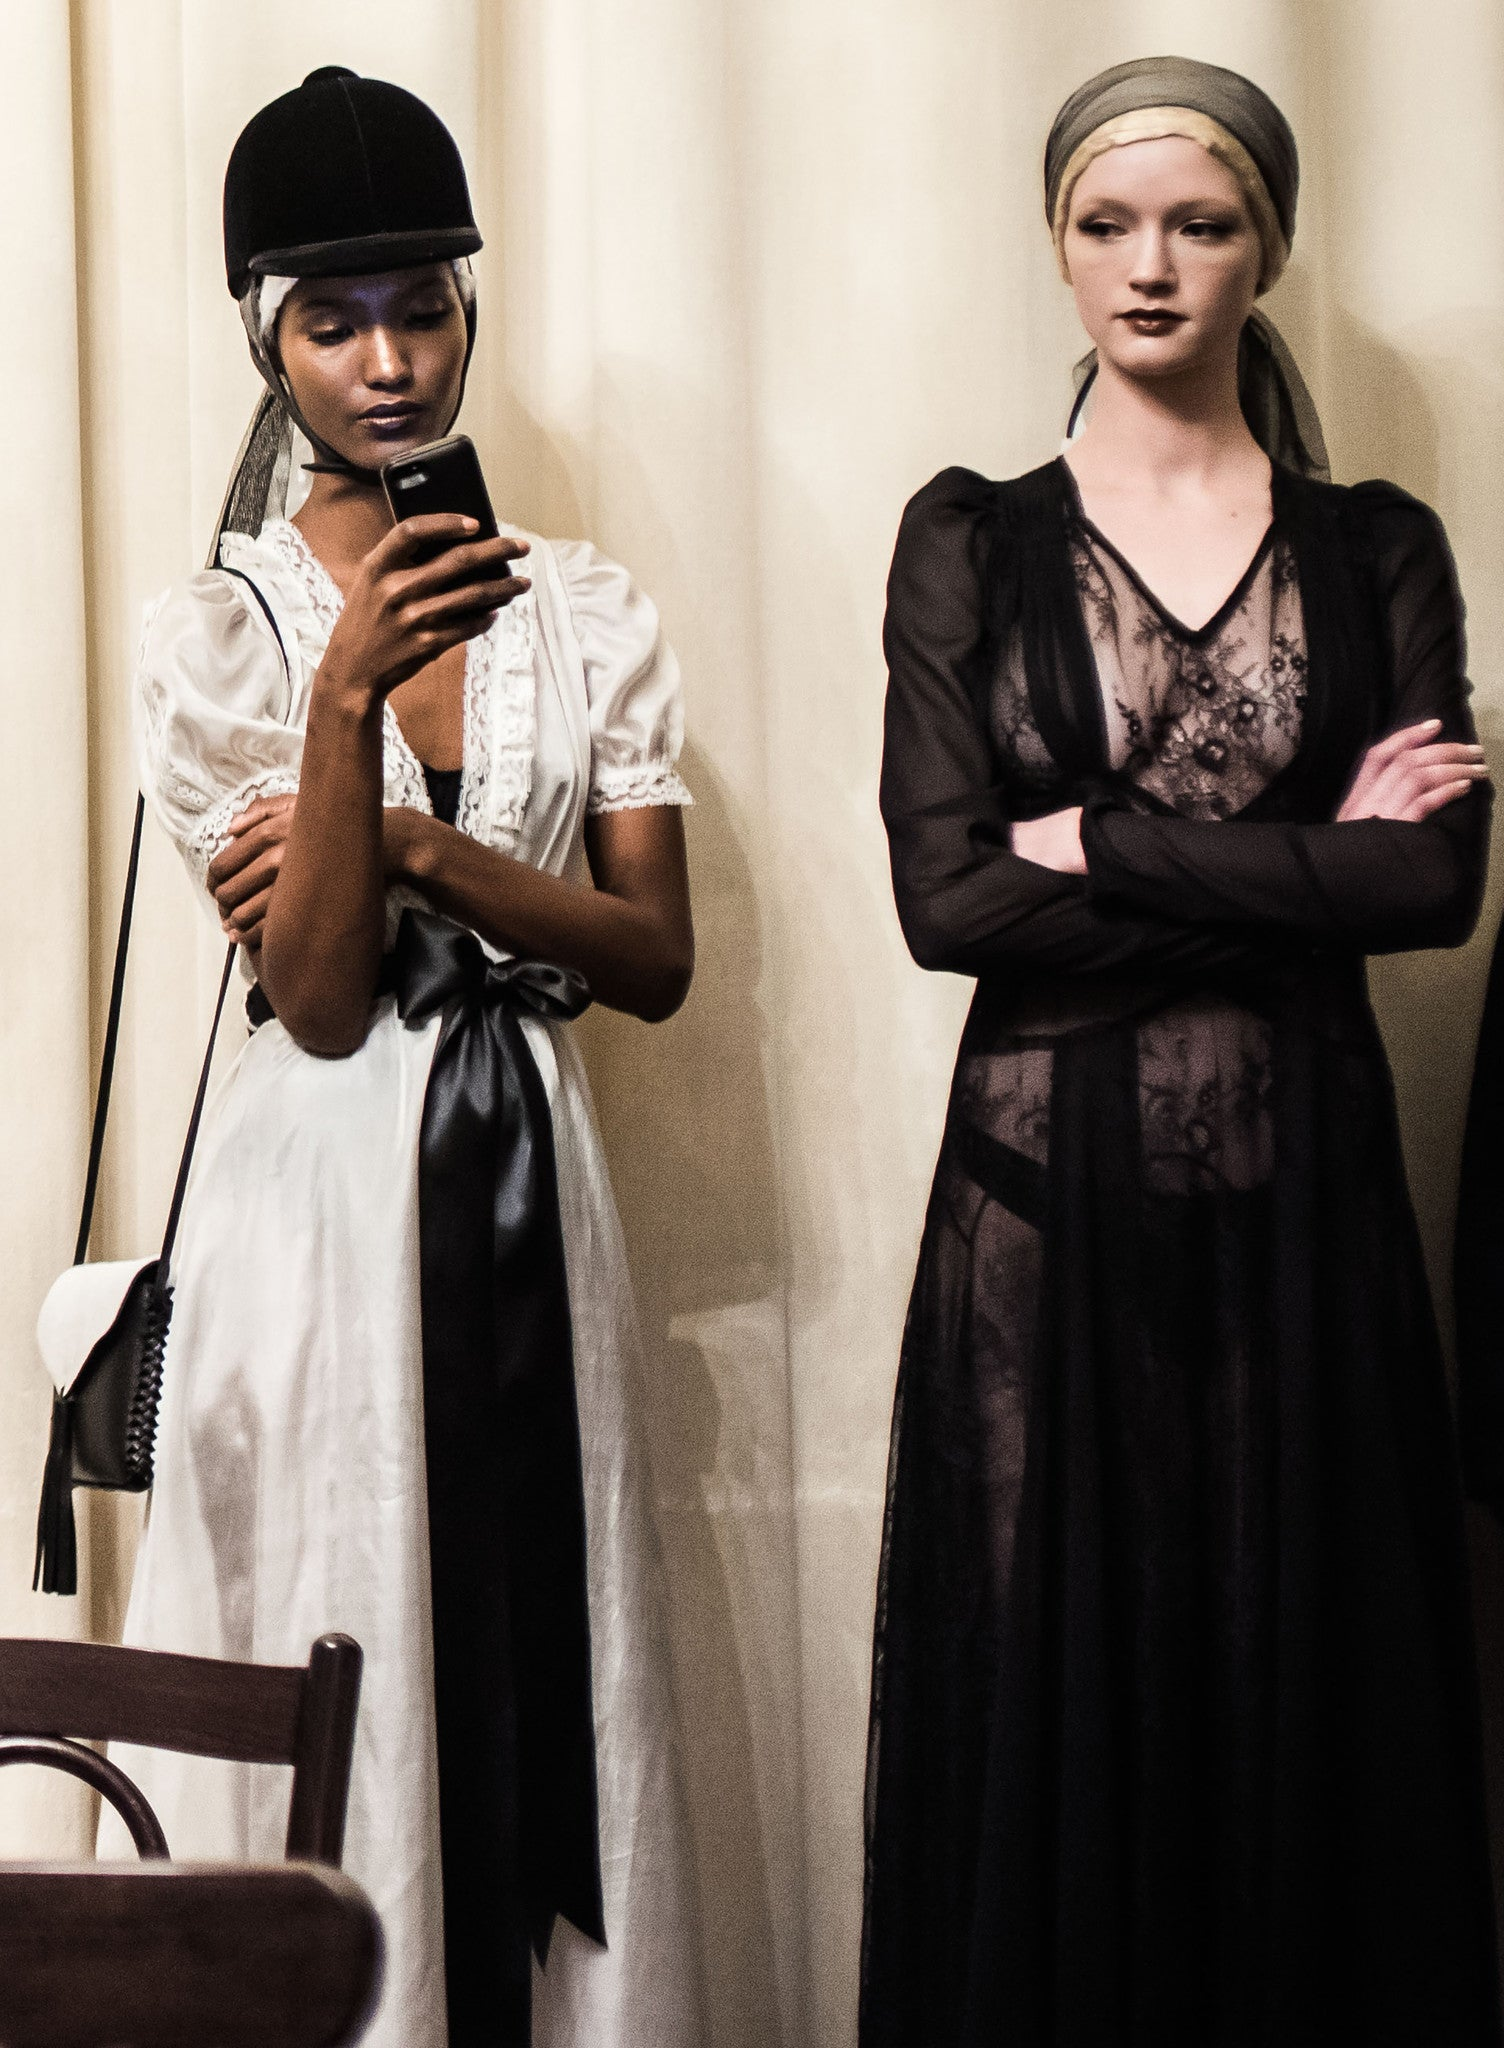 The Altruist Negligee Jung Silk Charmeuse Satin Black Bow Victorian Lace Baby Doll Fatima Siad IMG Model Wendy Nichol Clothing Fashion Designer Handmade in NYC AW14 Ready to Wear Fashion Runway Show Custom Tailoring Made to Measure